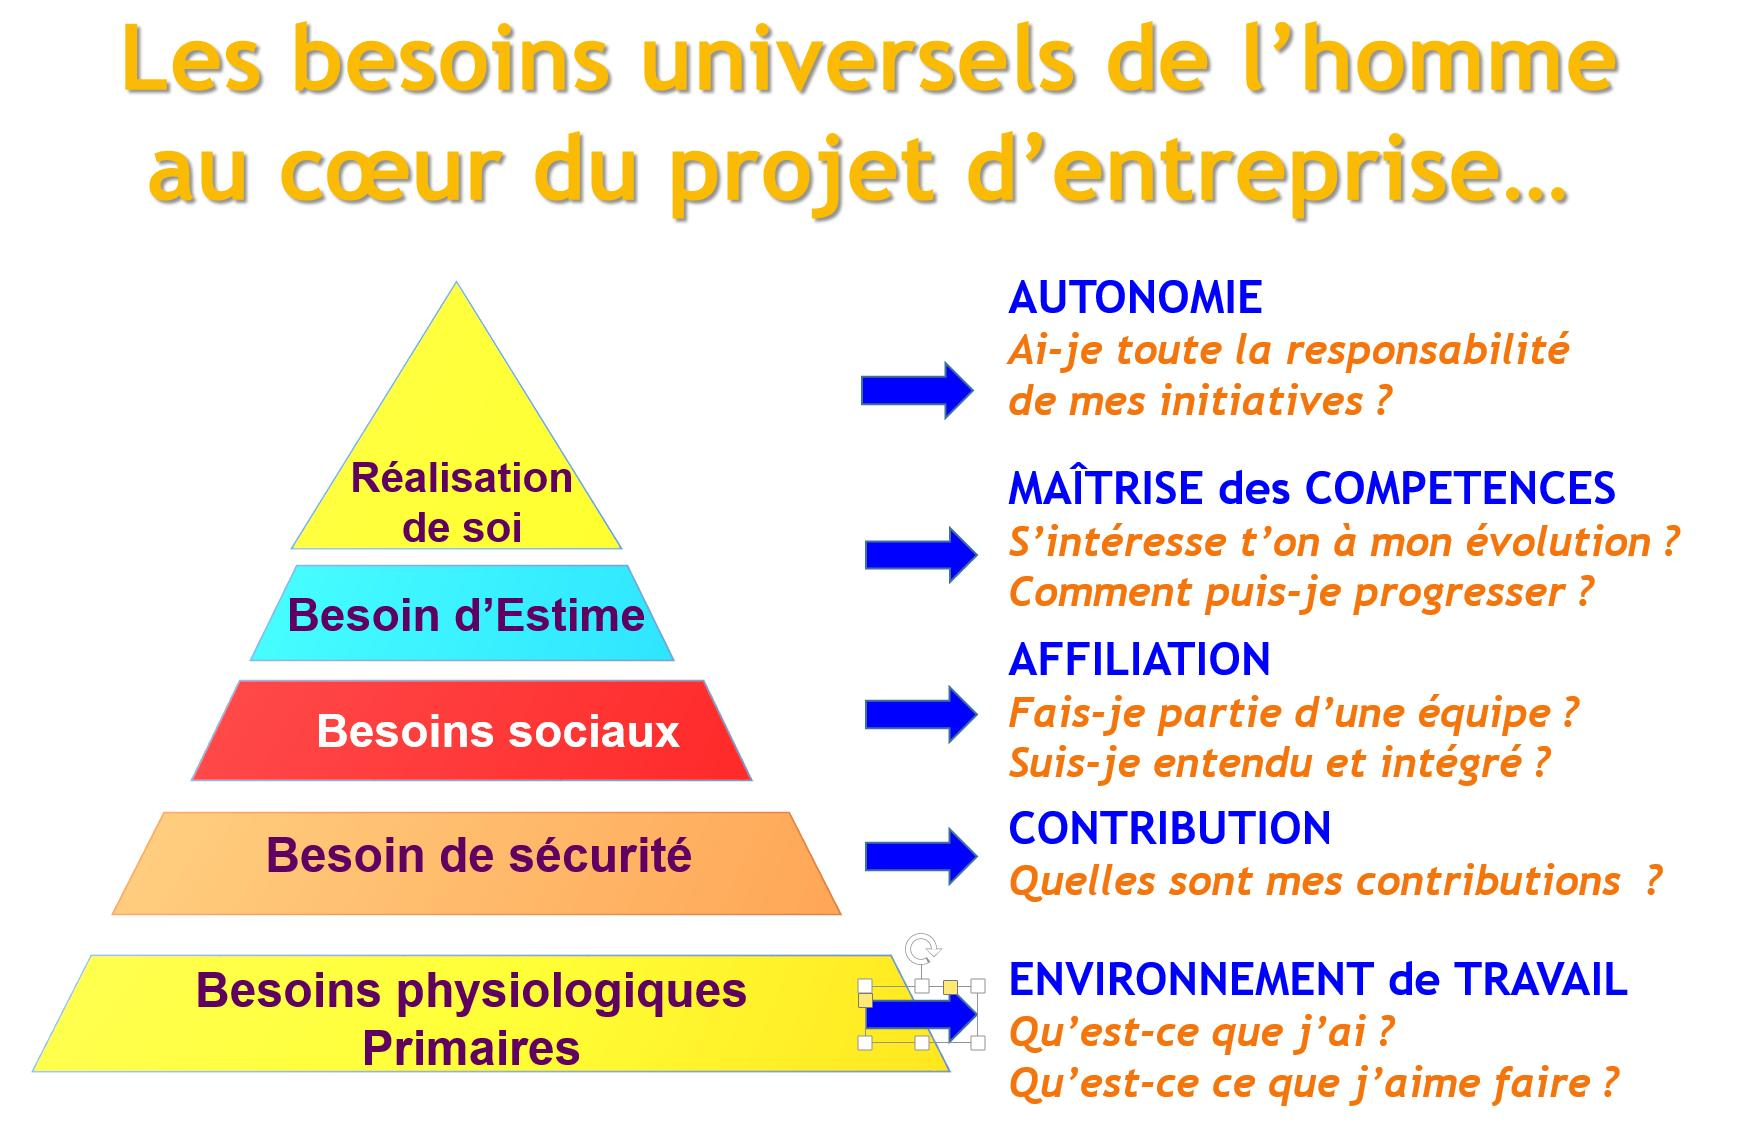 Besoins universels